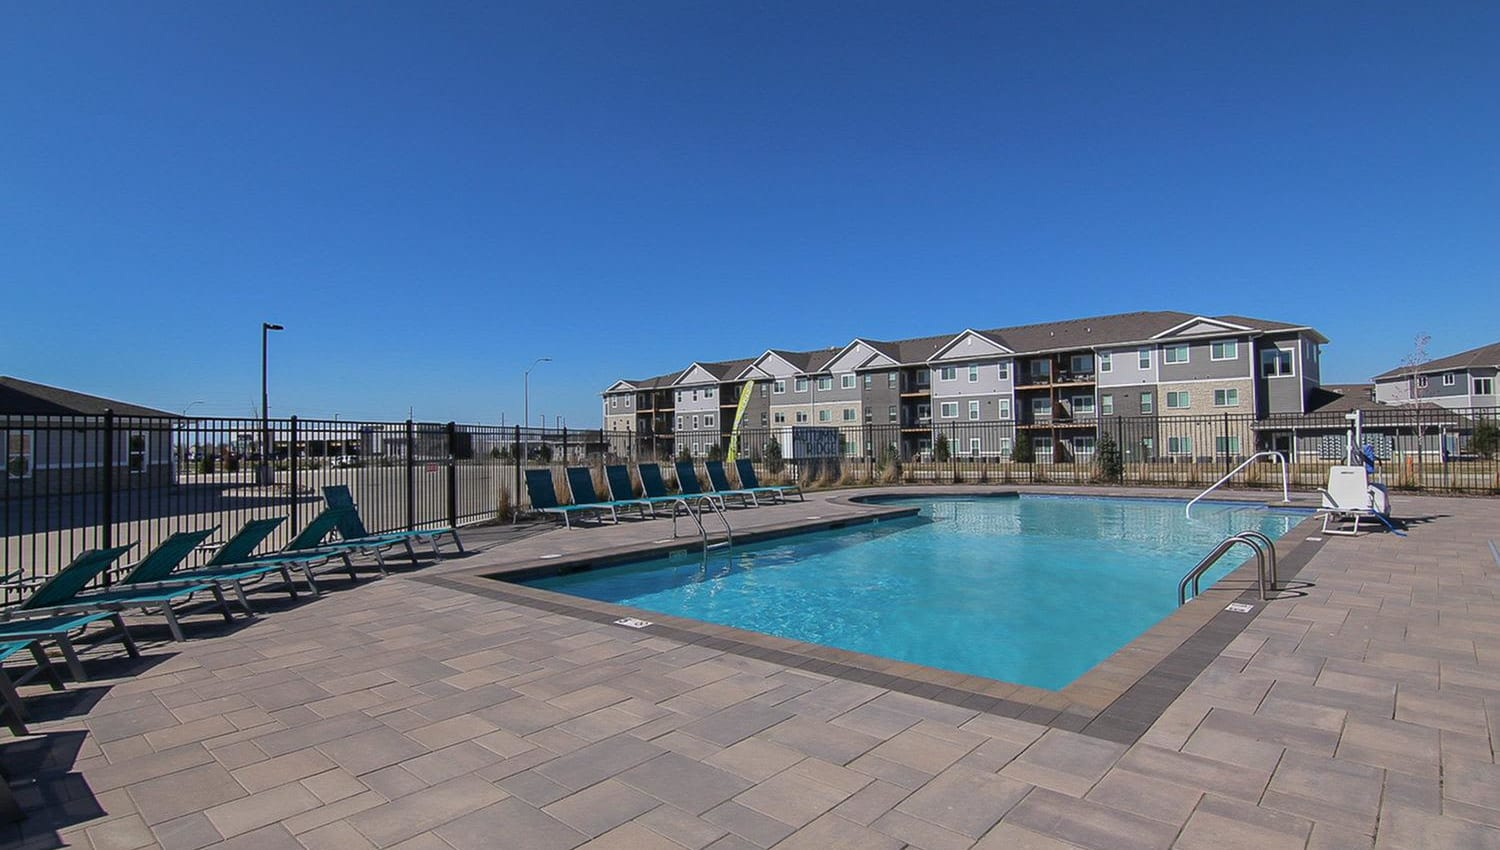 Resort-style swimming pool at Autumn Ridge in Waukee, Iowa